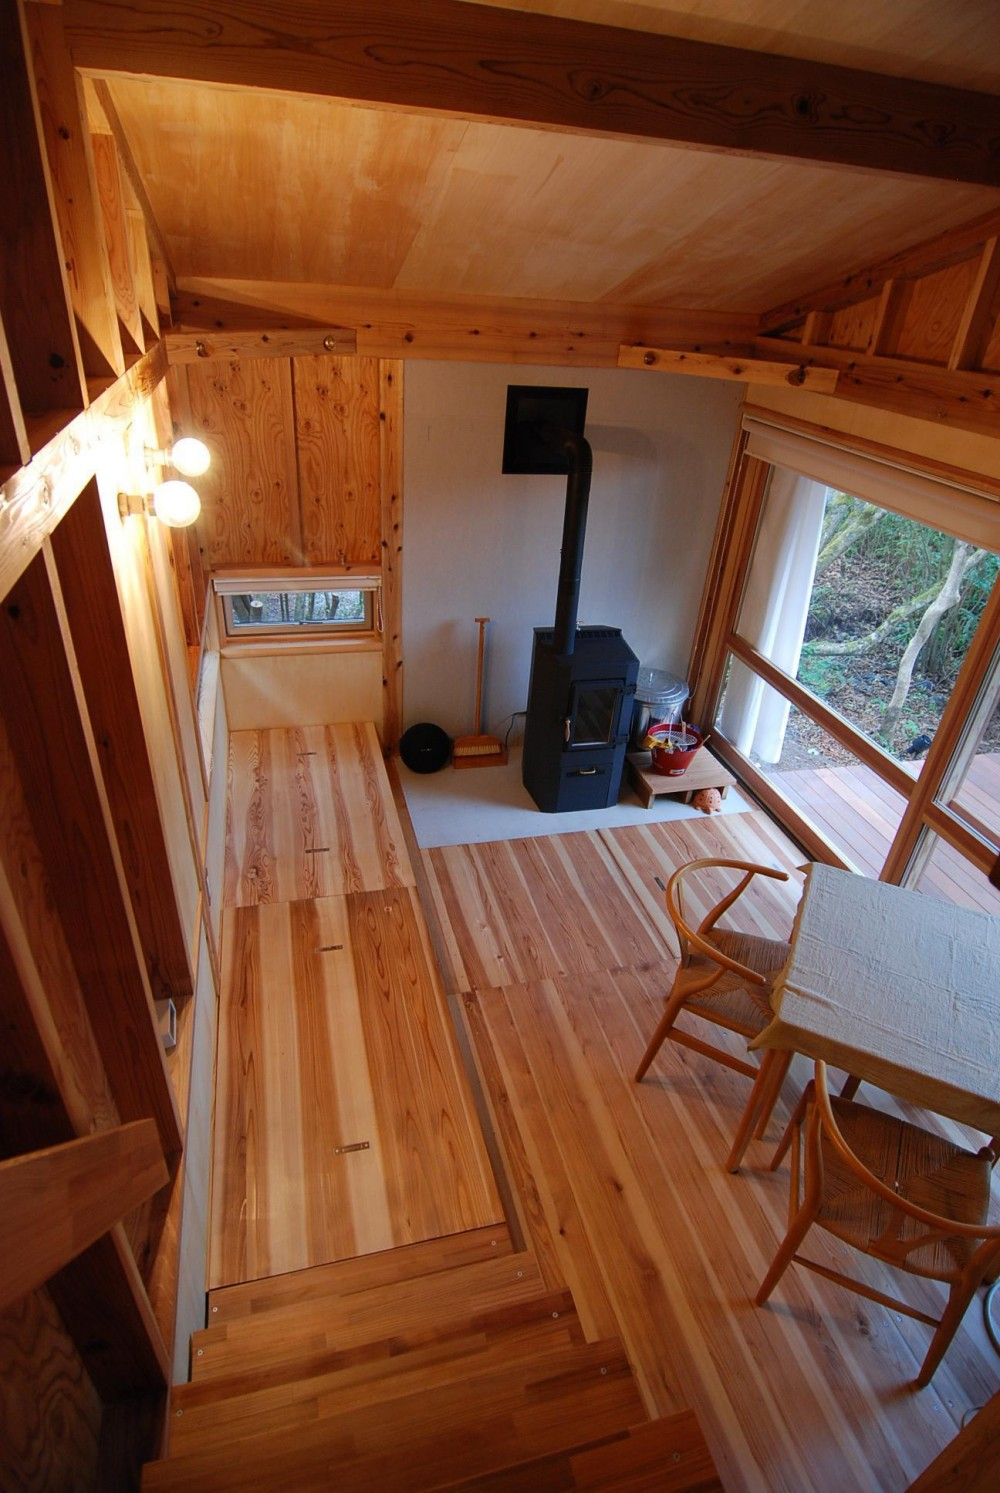 OUR CABIN OUR DIY (手を入れやすくシンプルに)